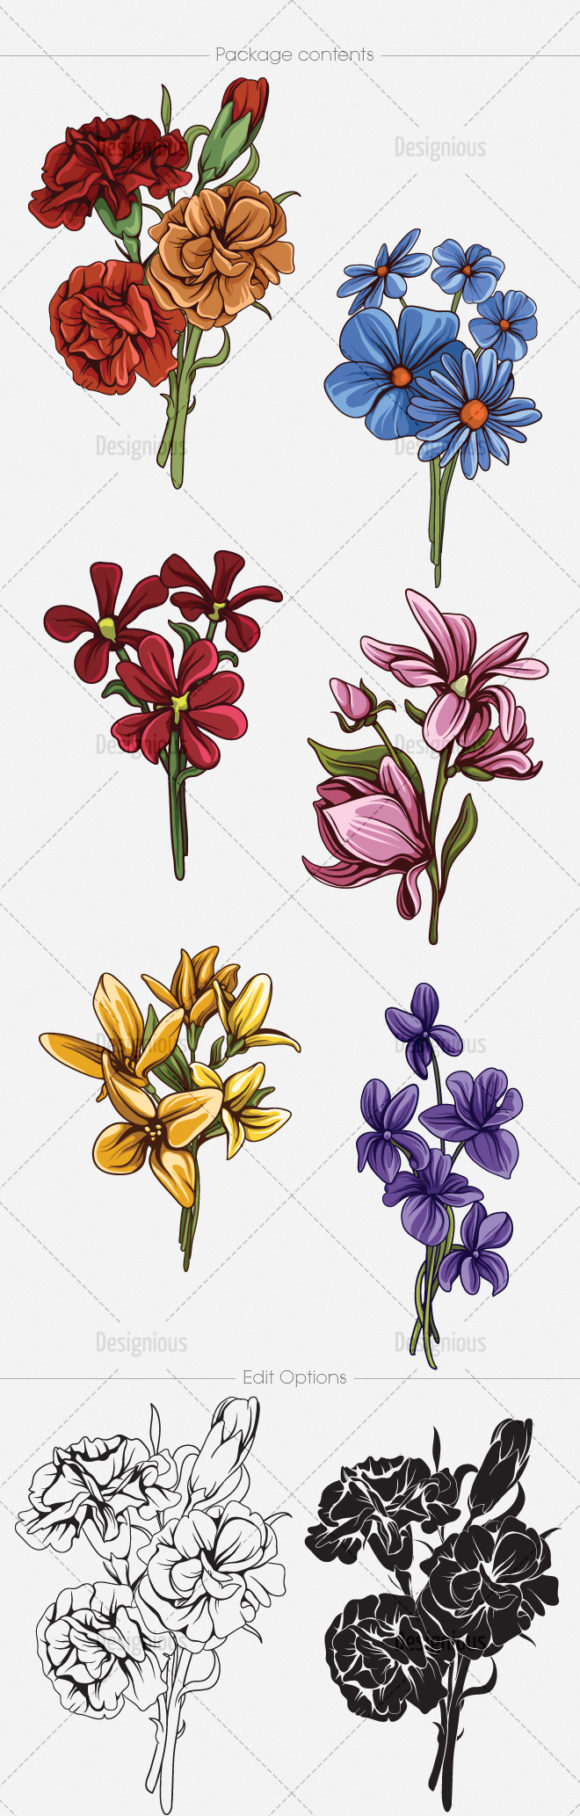 Floral Vector Pack 143 6